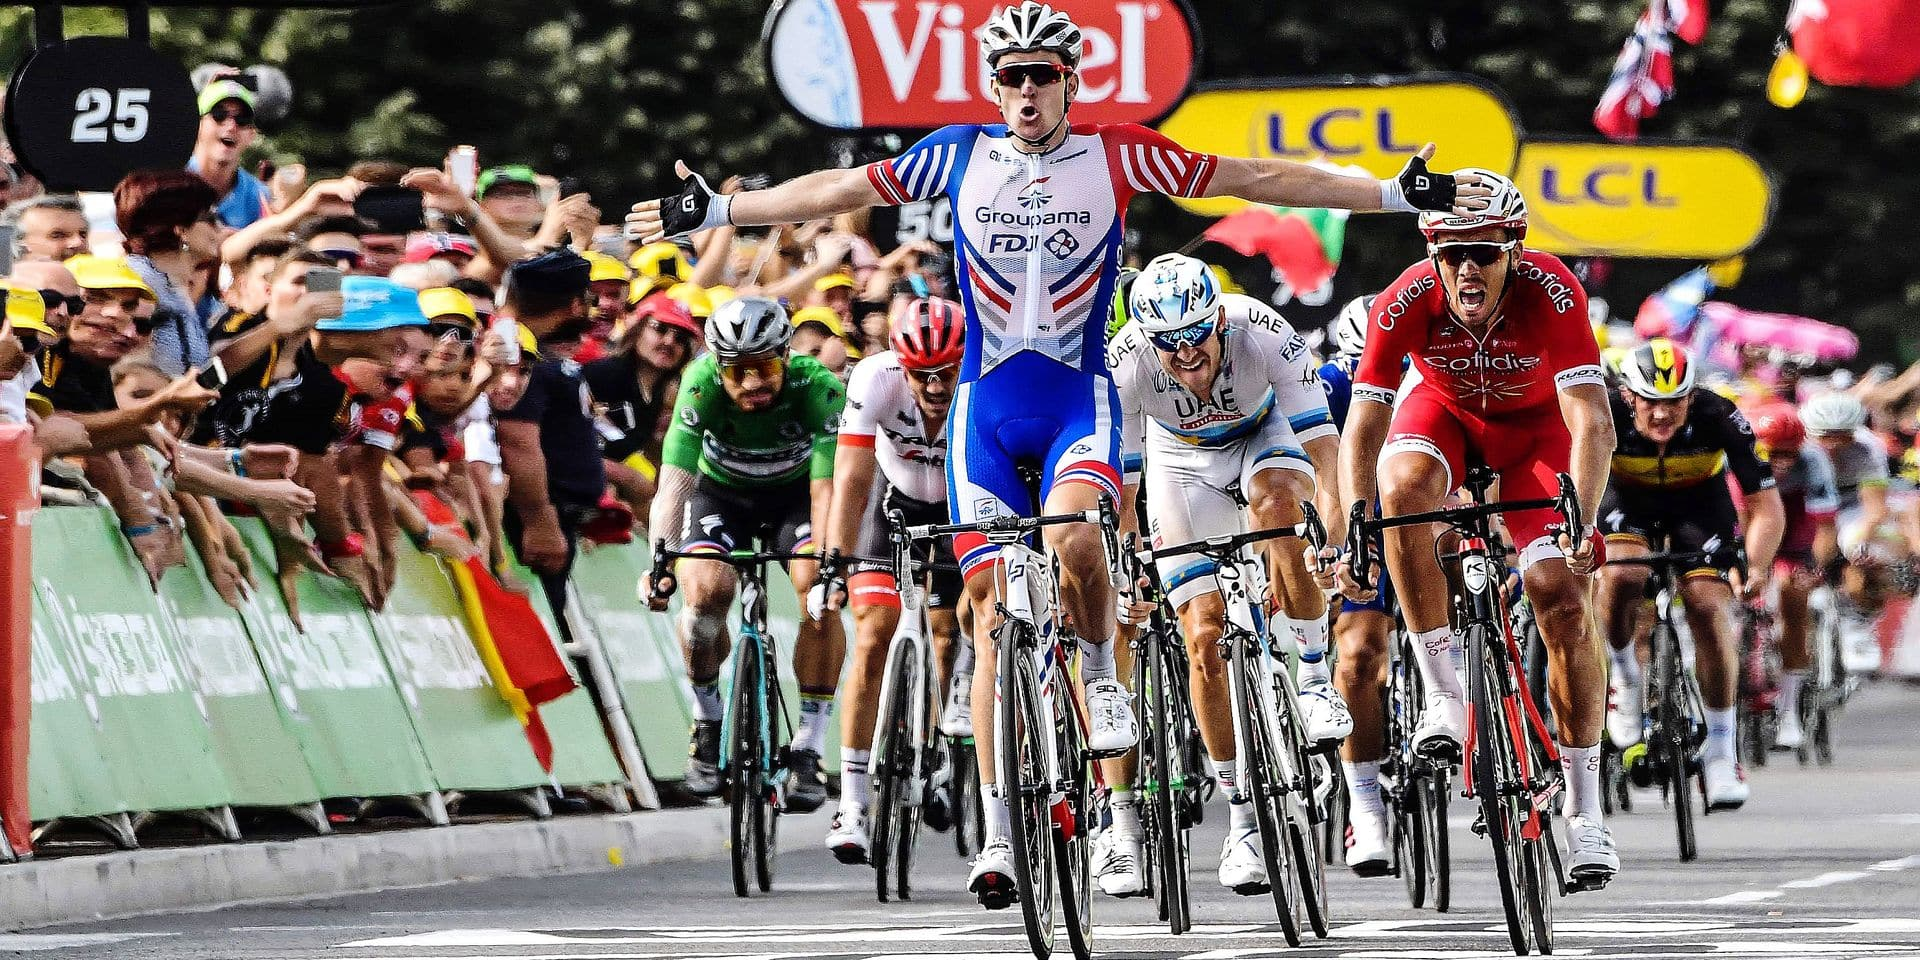 France's Arnaud Demare (C) celebrates as he crosses the finish line to win, ahead of France's Christophe Laporte (R) the 18th stage of the 105th edition of the Tour de France cycling race, on July 26, 2018 between Trie-sur-Baise and Pau, southwestern France. / AFP PHOTO / Jeff PACHOUD